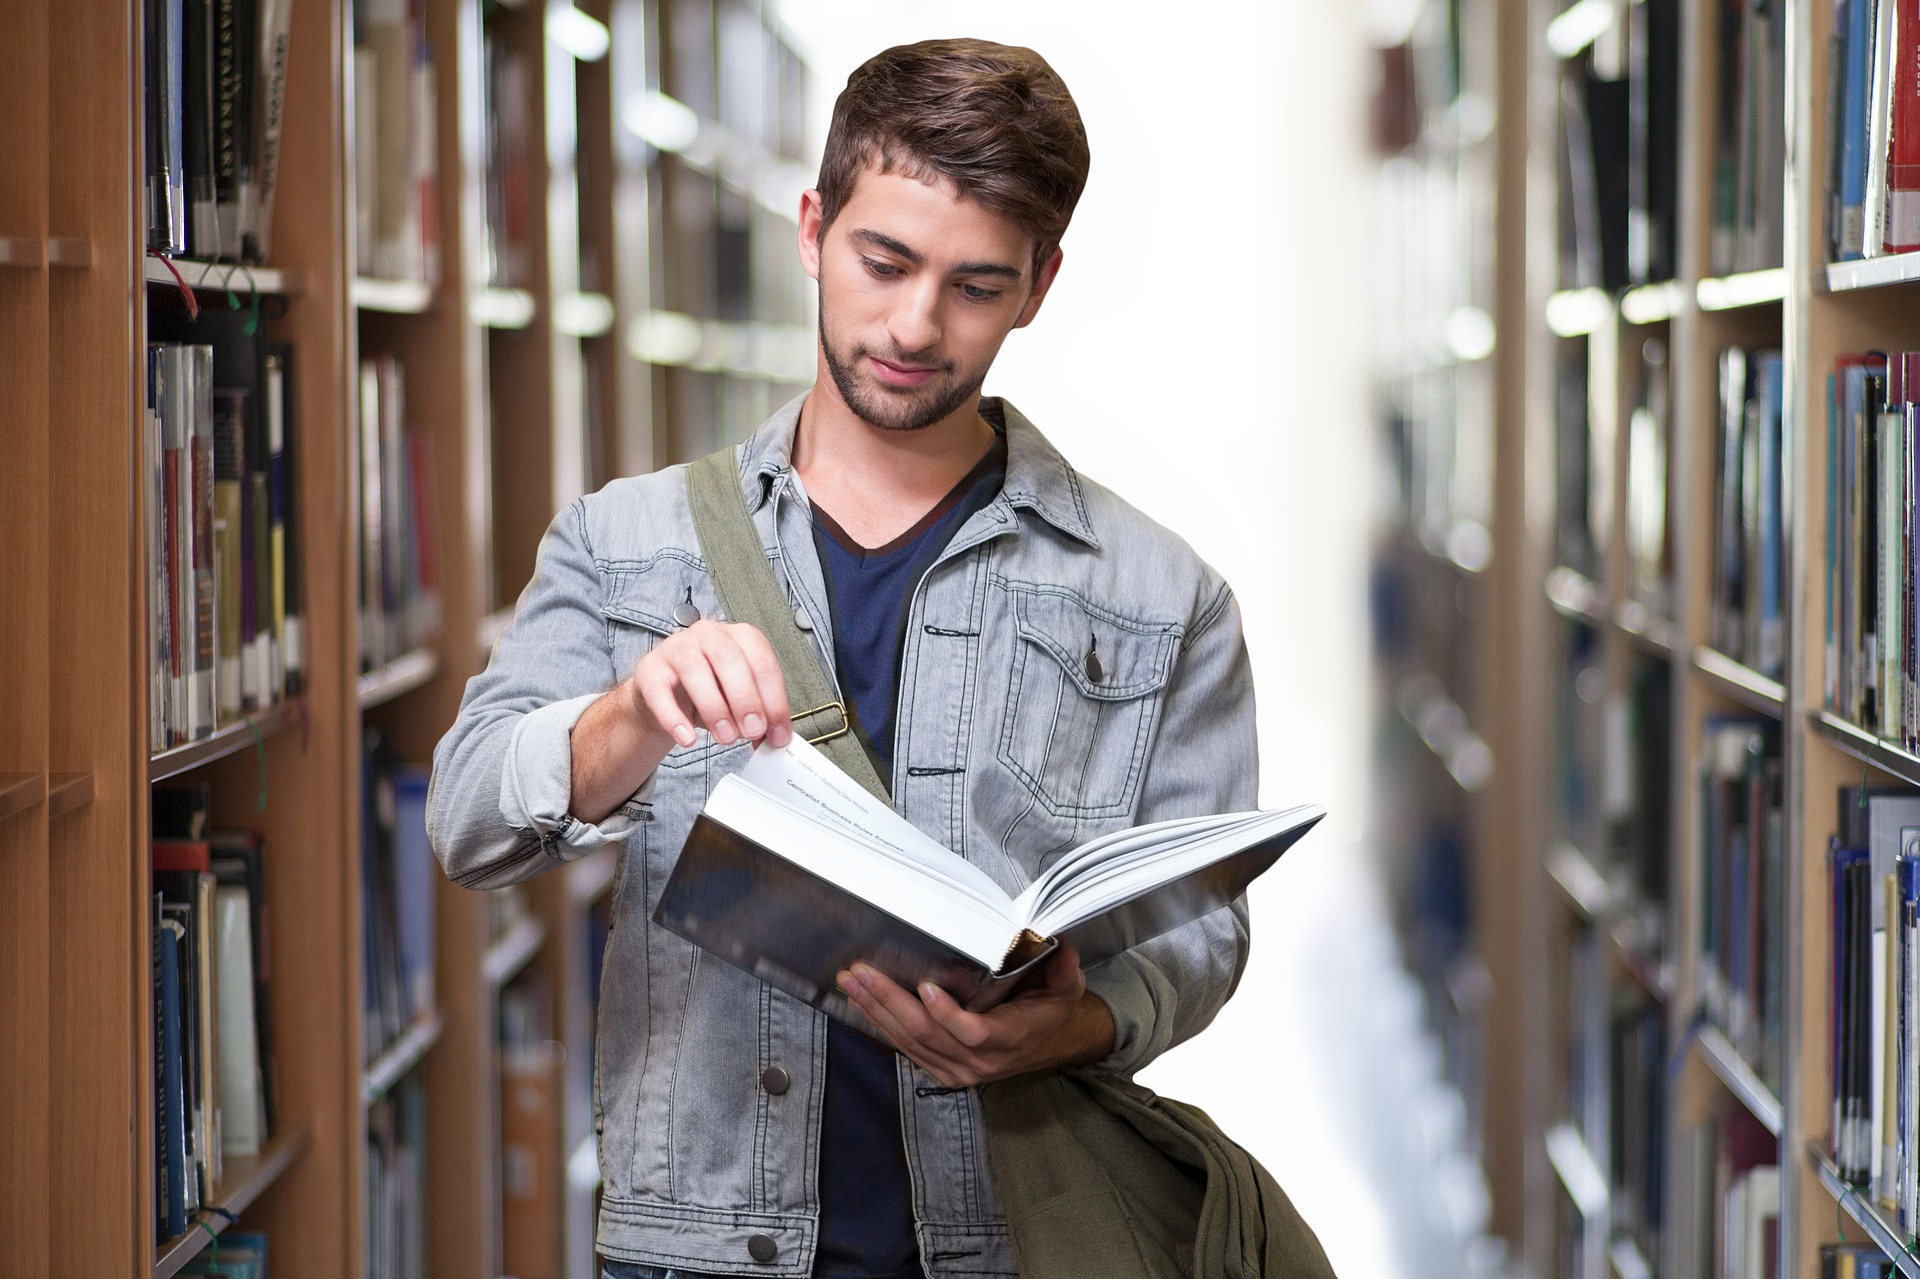 Studying at Universities (Student Visa)